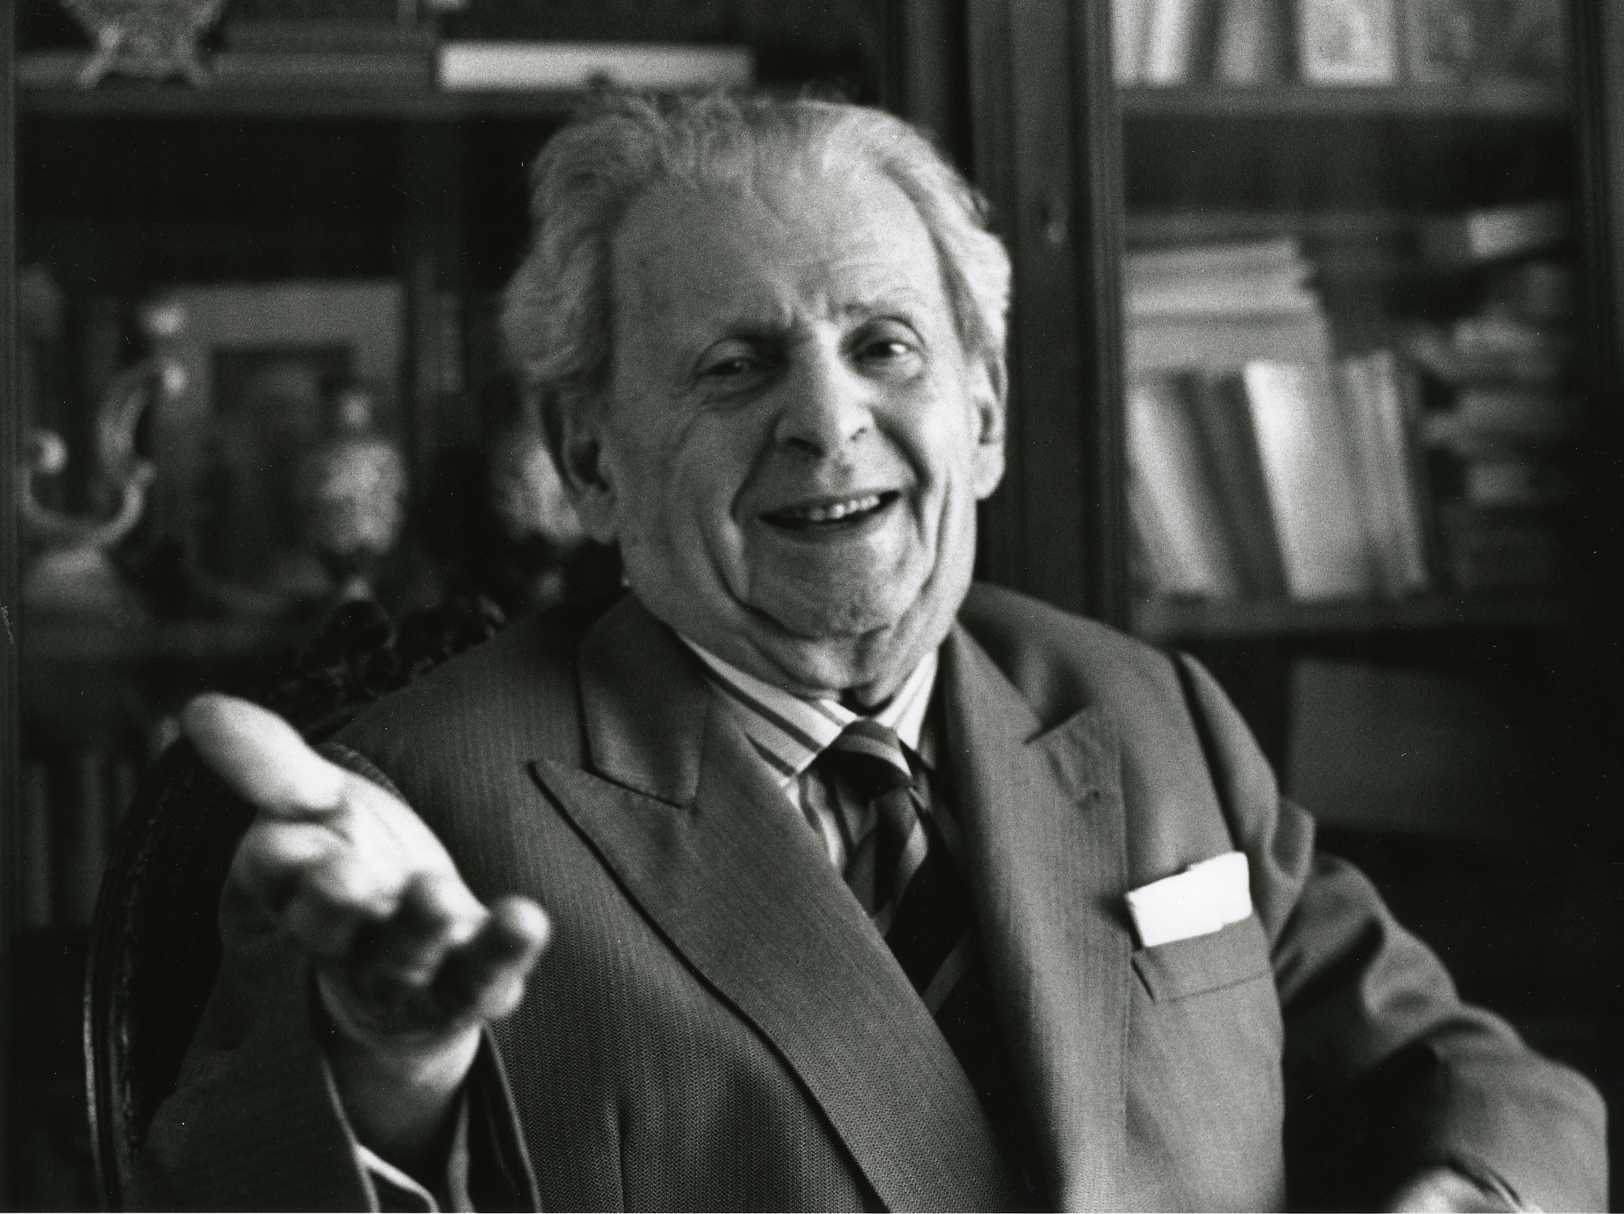 emmanuel levinas. totality and infinity. an essay on exteriority Totality and infinity an essay on exteriority emmanuel levinas duquesne 1969 • 314 pp 6 x 9 ethics & moral philosophy / phenomenology $2500 paperback, 978-0.